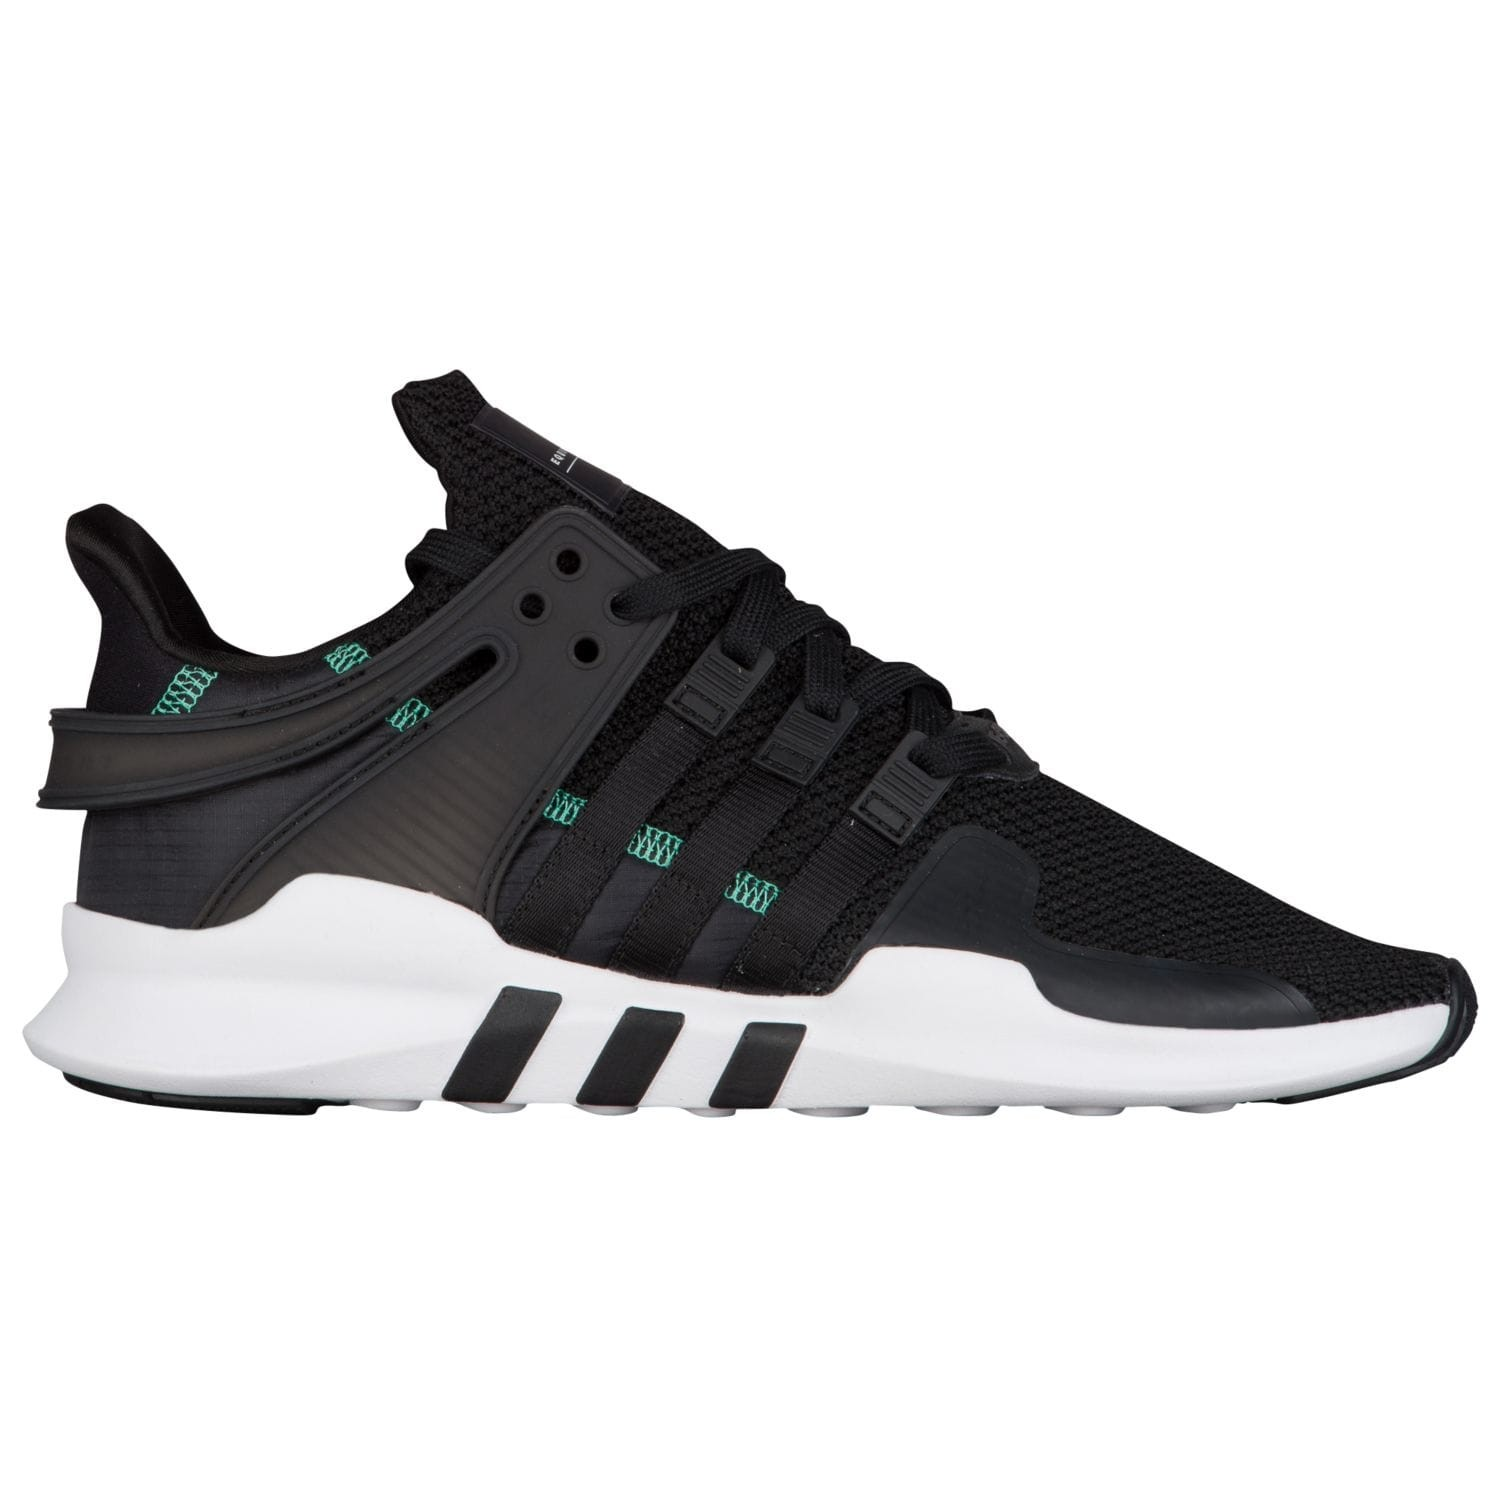 adidas Originals EQT Support Adv Skor CQ3006 - Herr